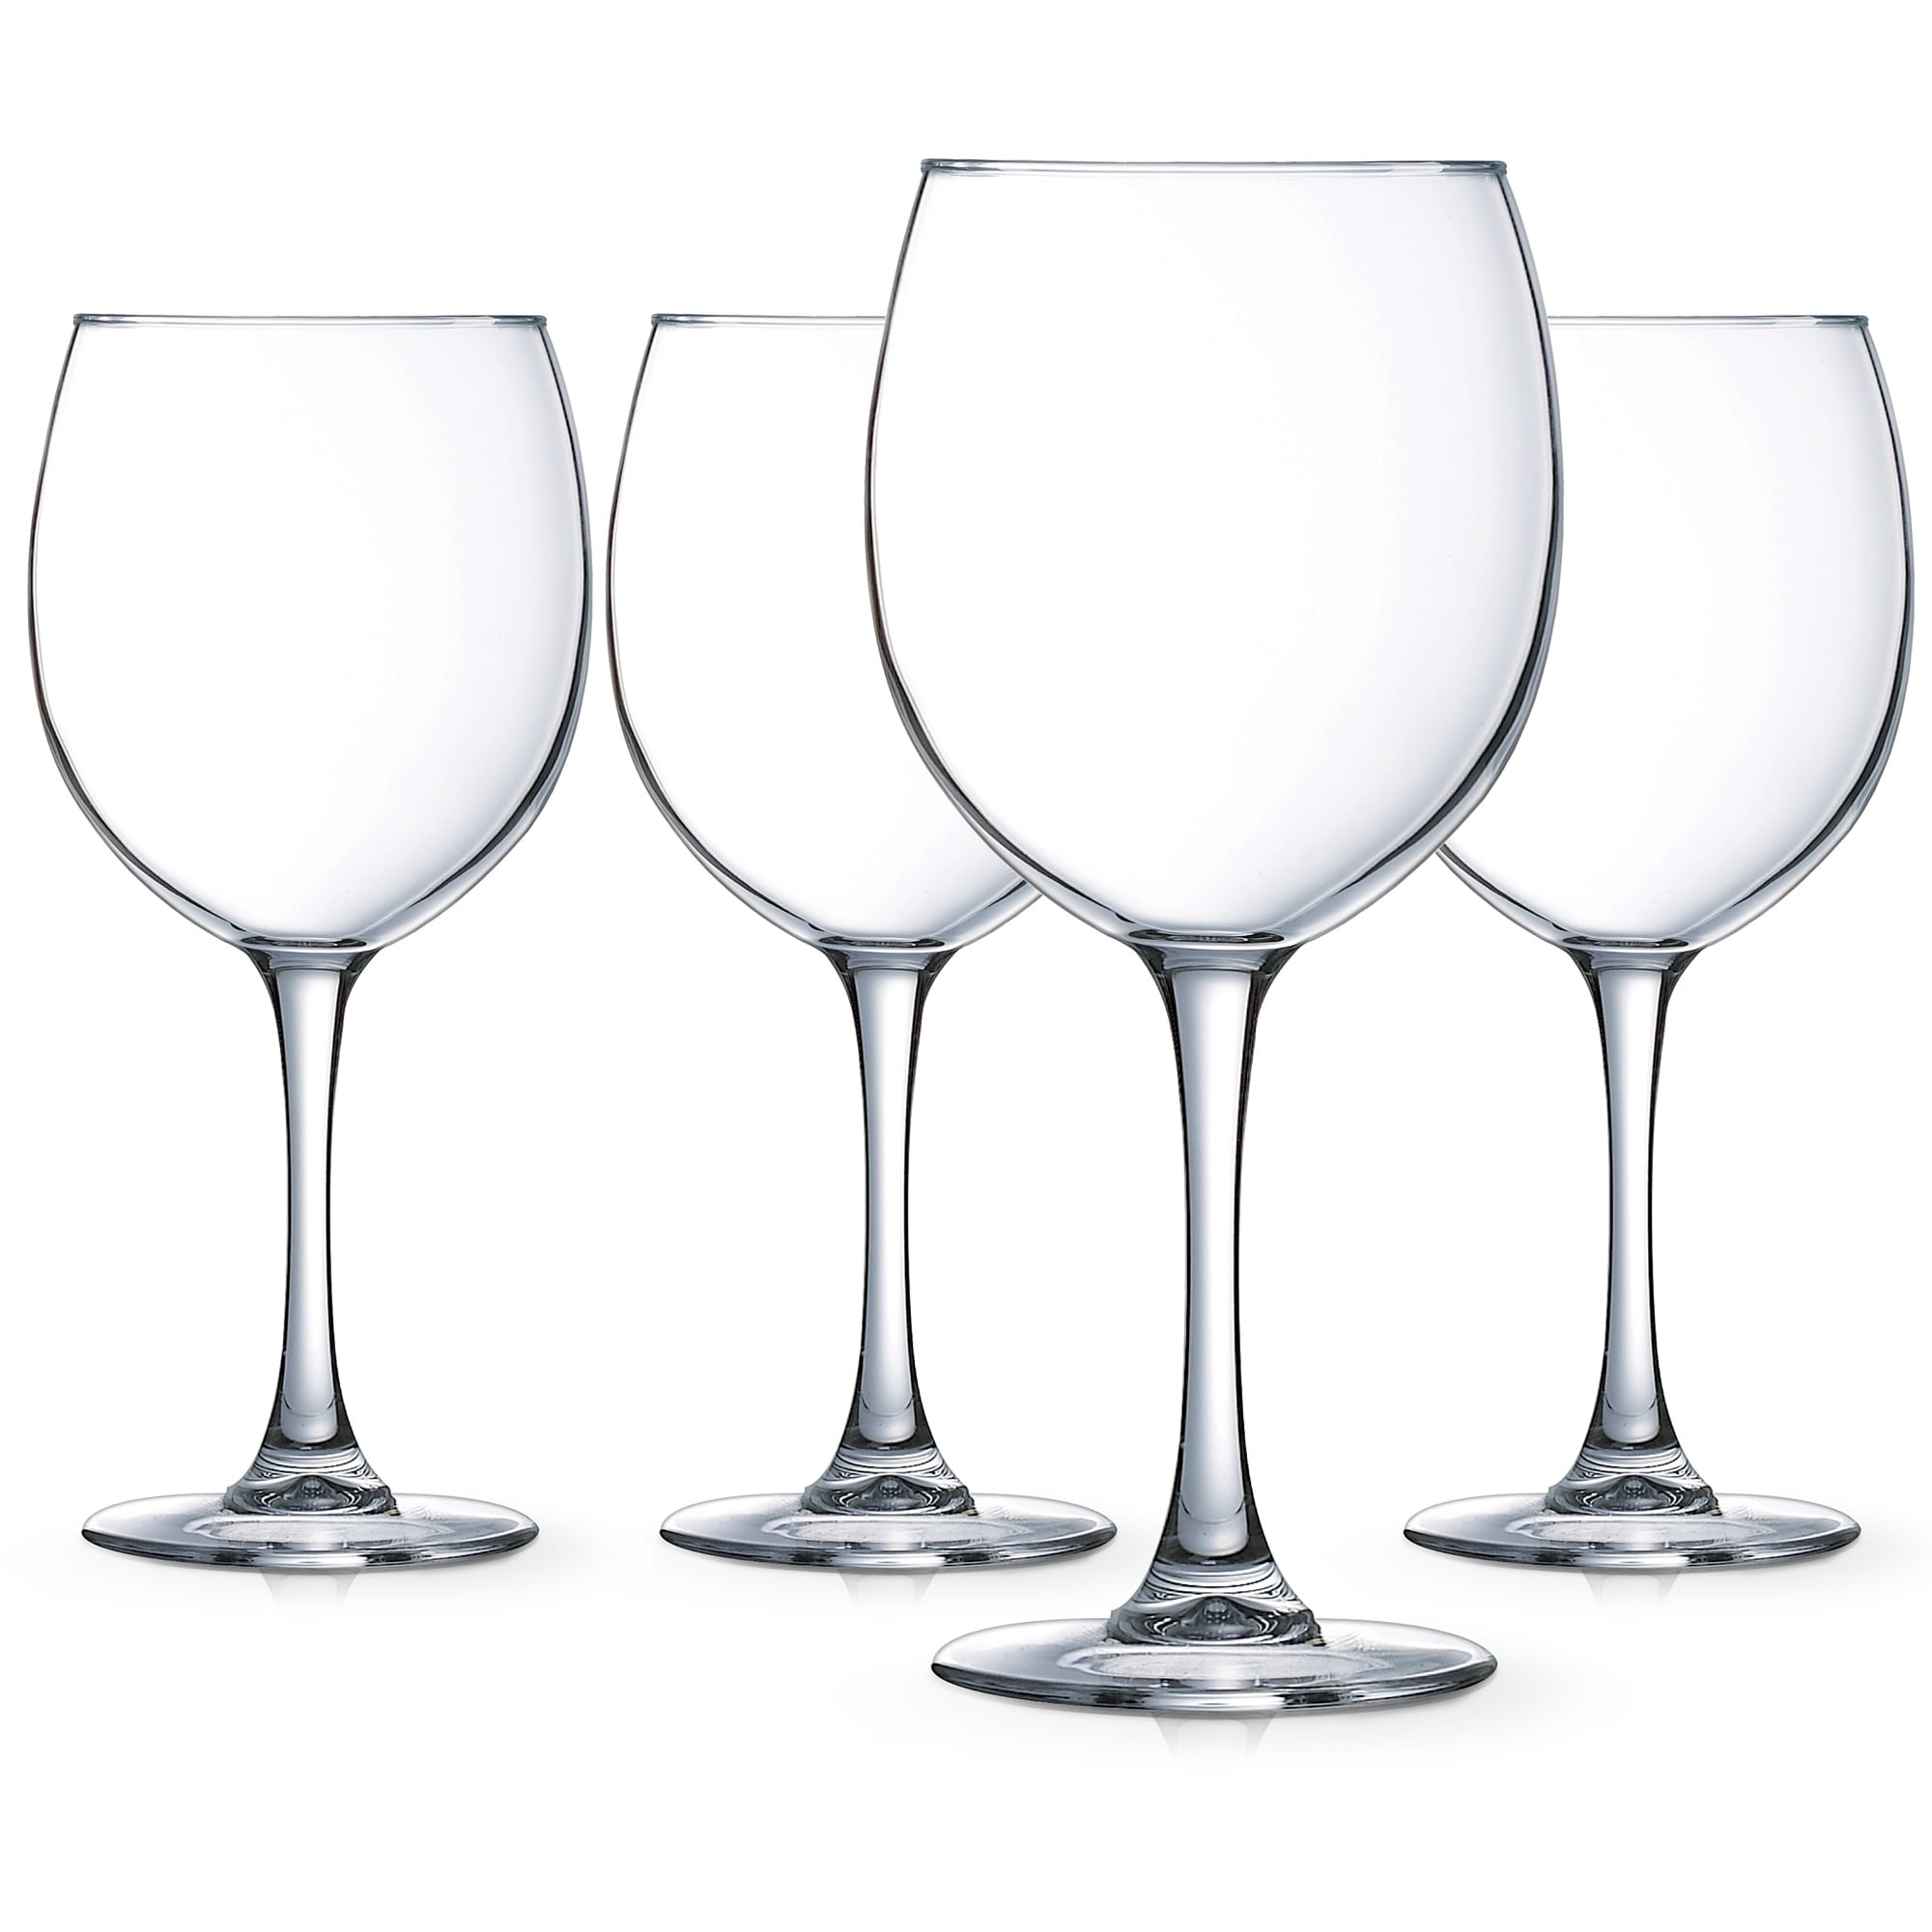 00e9e82caa7 Luminarc Cachet 20.5 Ounce Balloon Wine Glass, Set of 4